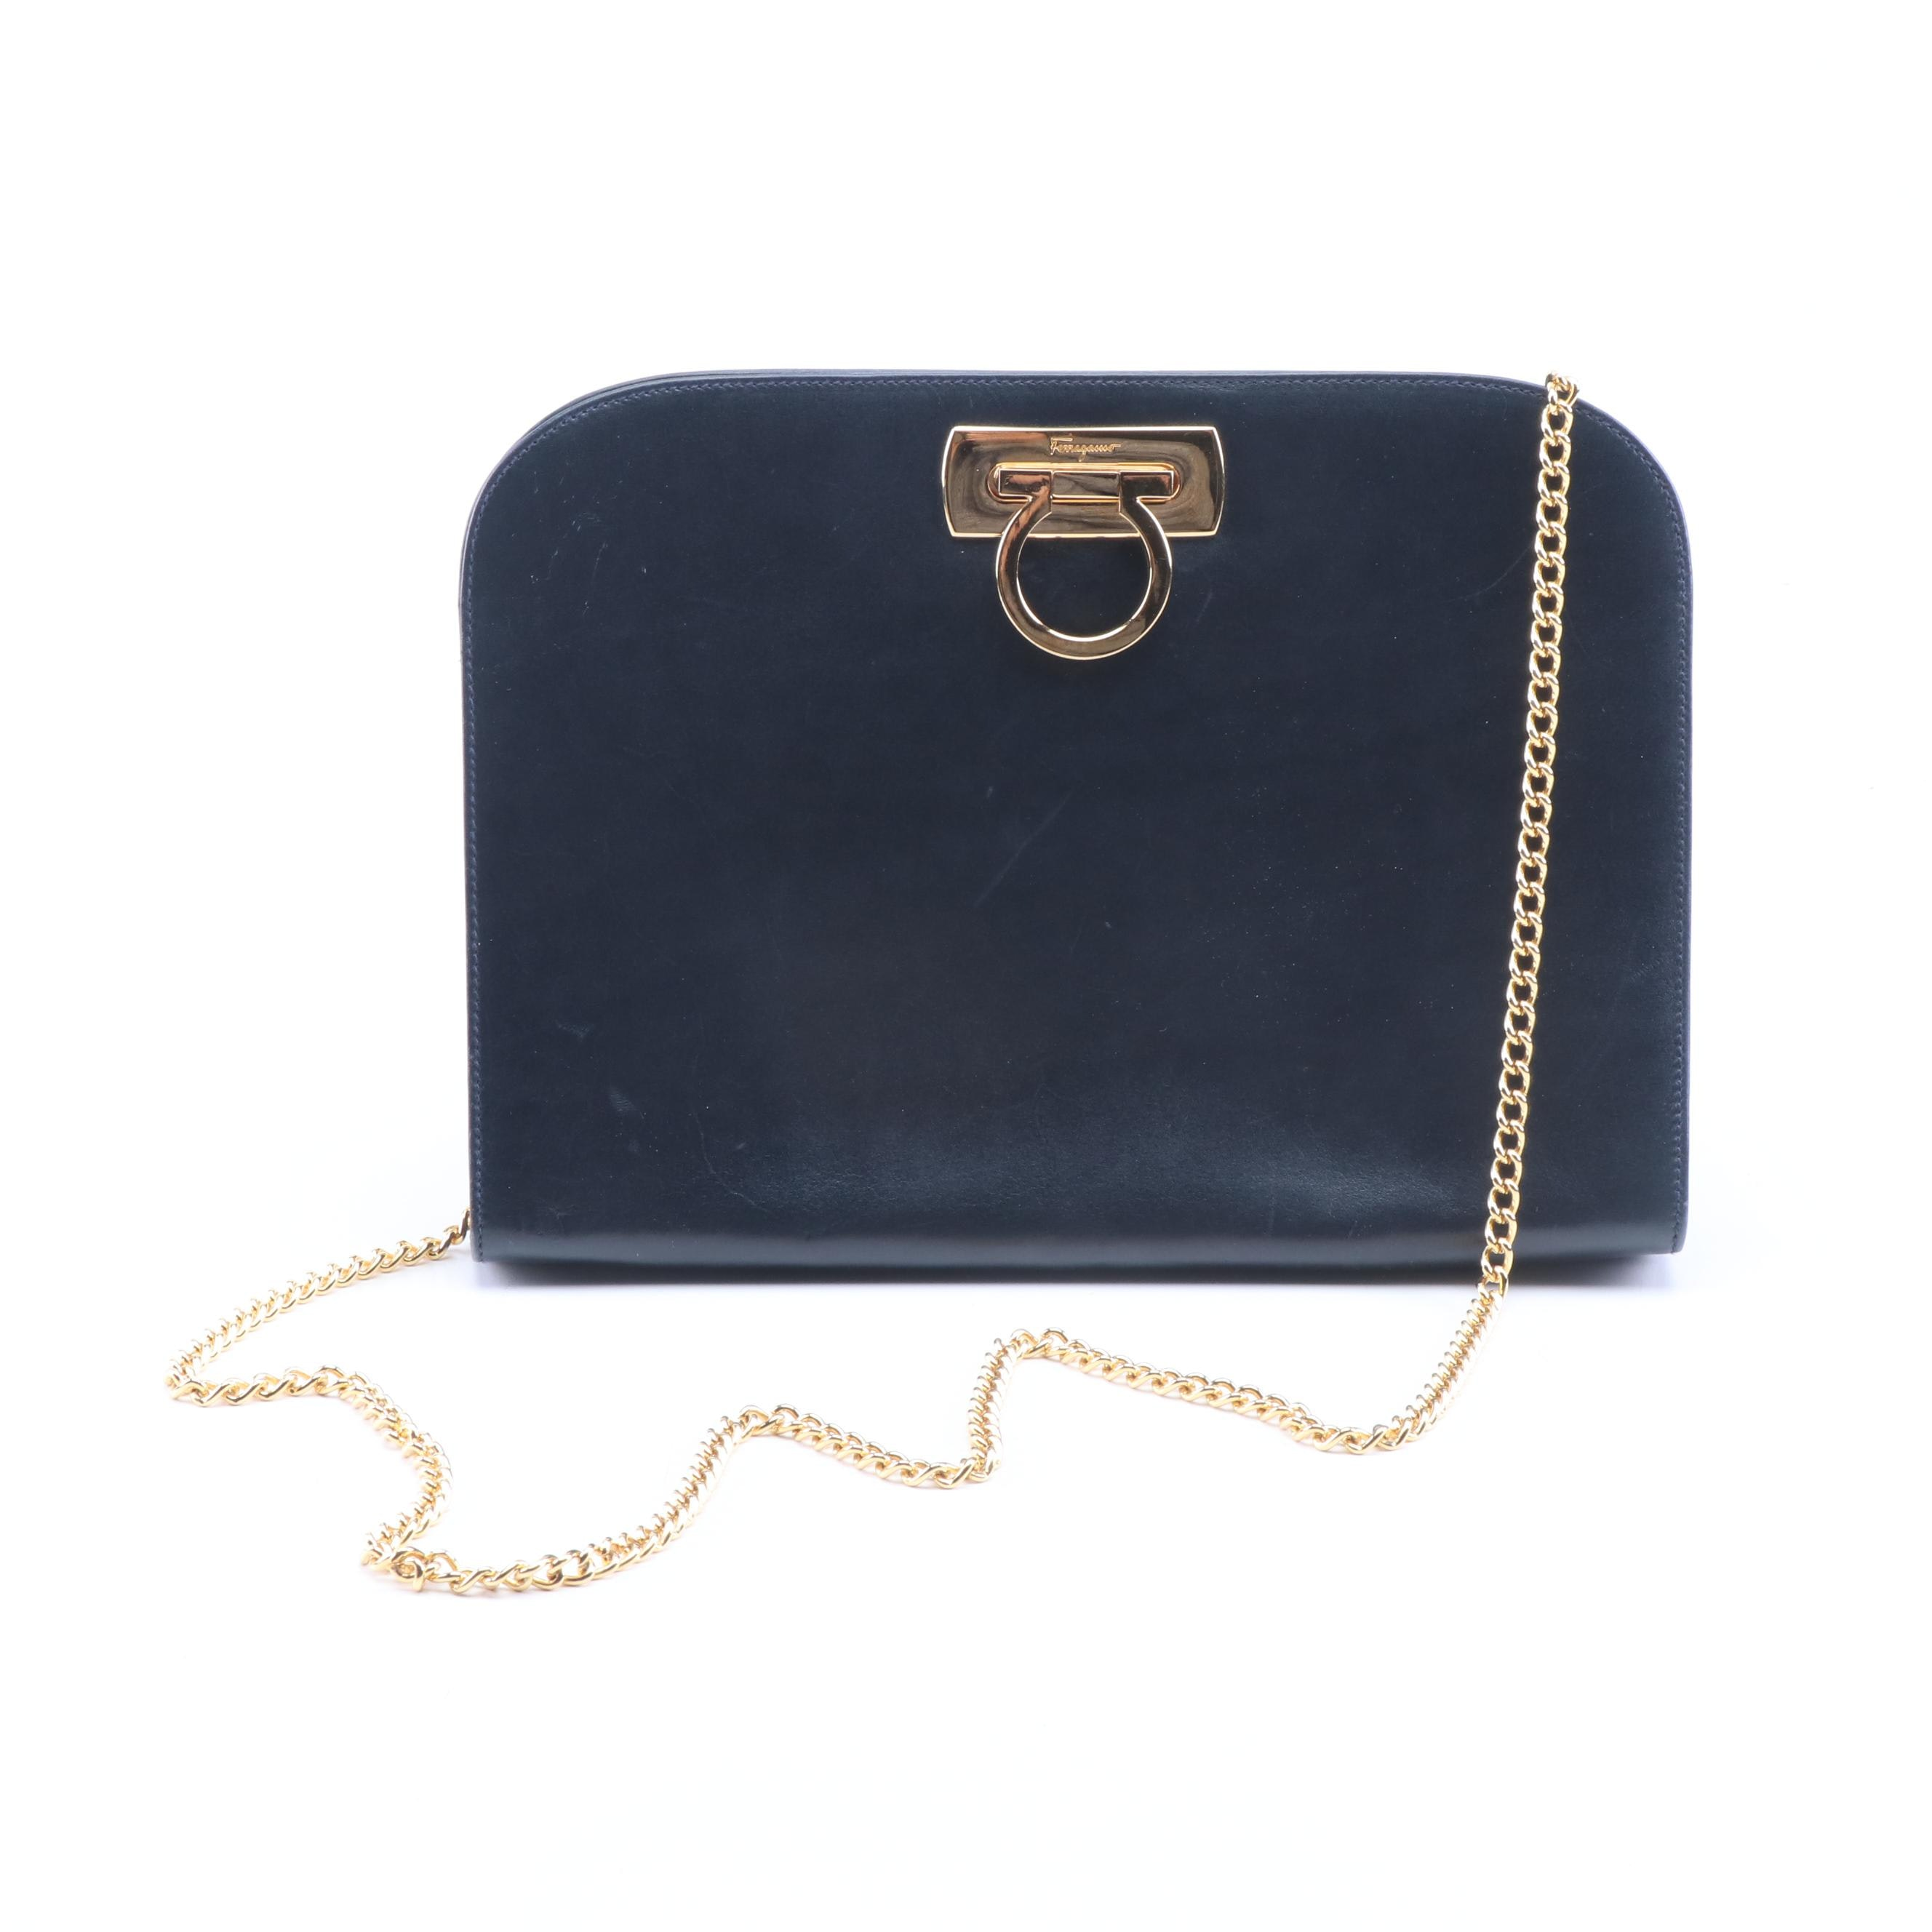 Salvatore Ferragamo Navy Calfskin Gancini Shoulder Bag with Chain Strap